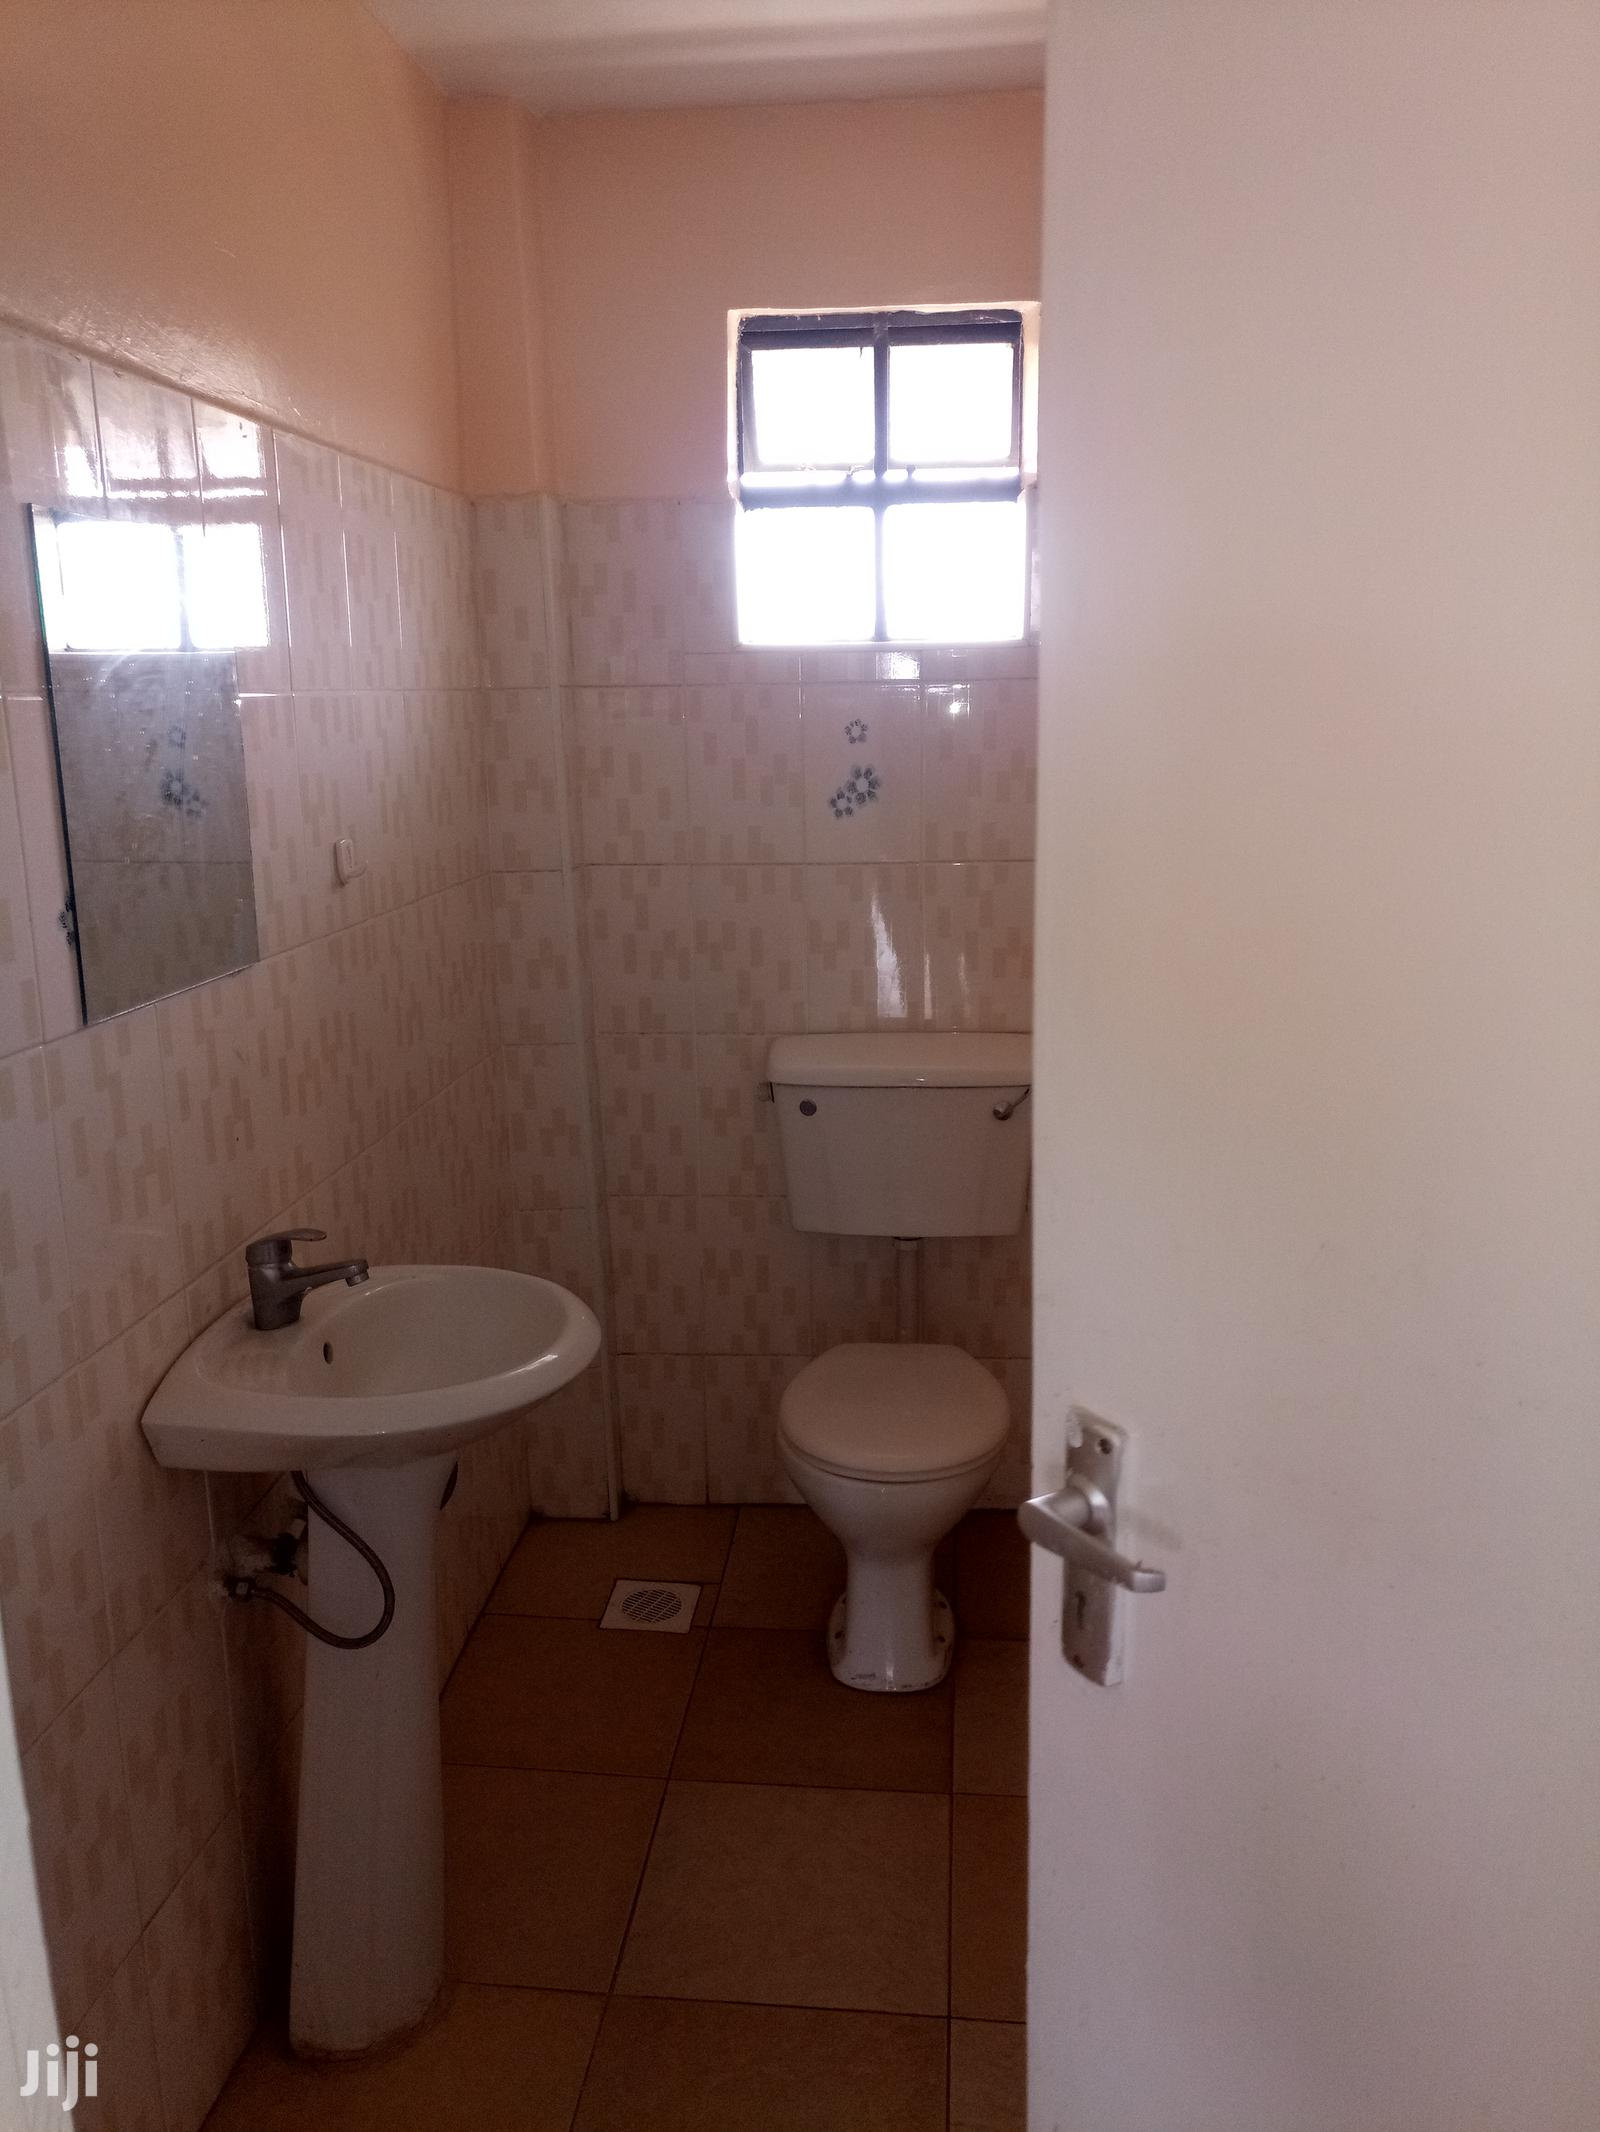 A Spacious All En Suite Two Bedroomed House Available To Let | Houses & Apartments For Rent for sale in Ongata Rongai, Kajiado, Kenya